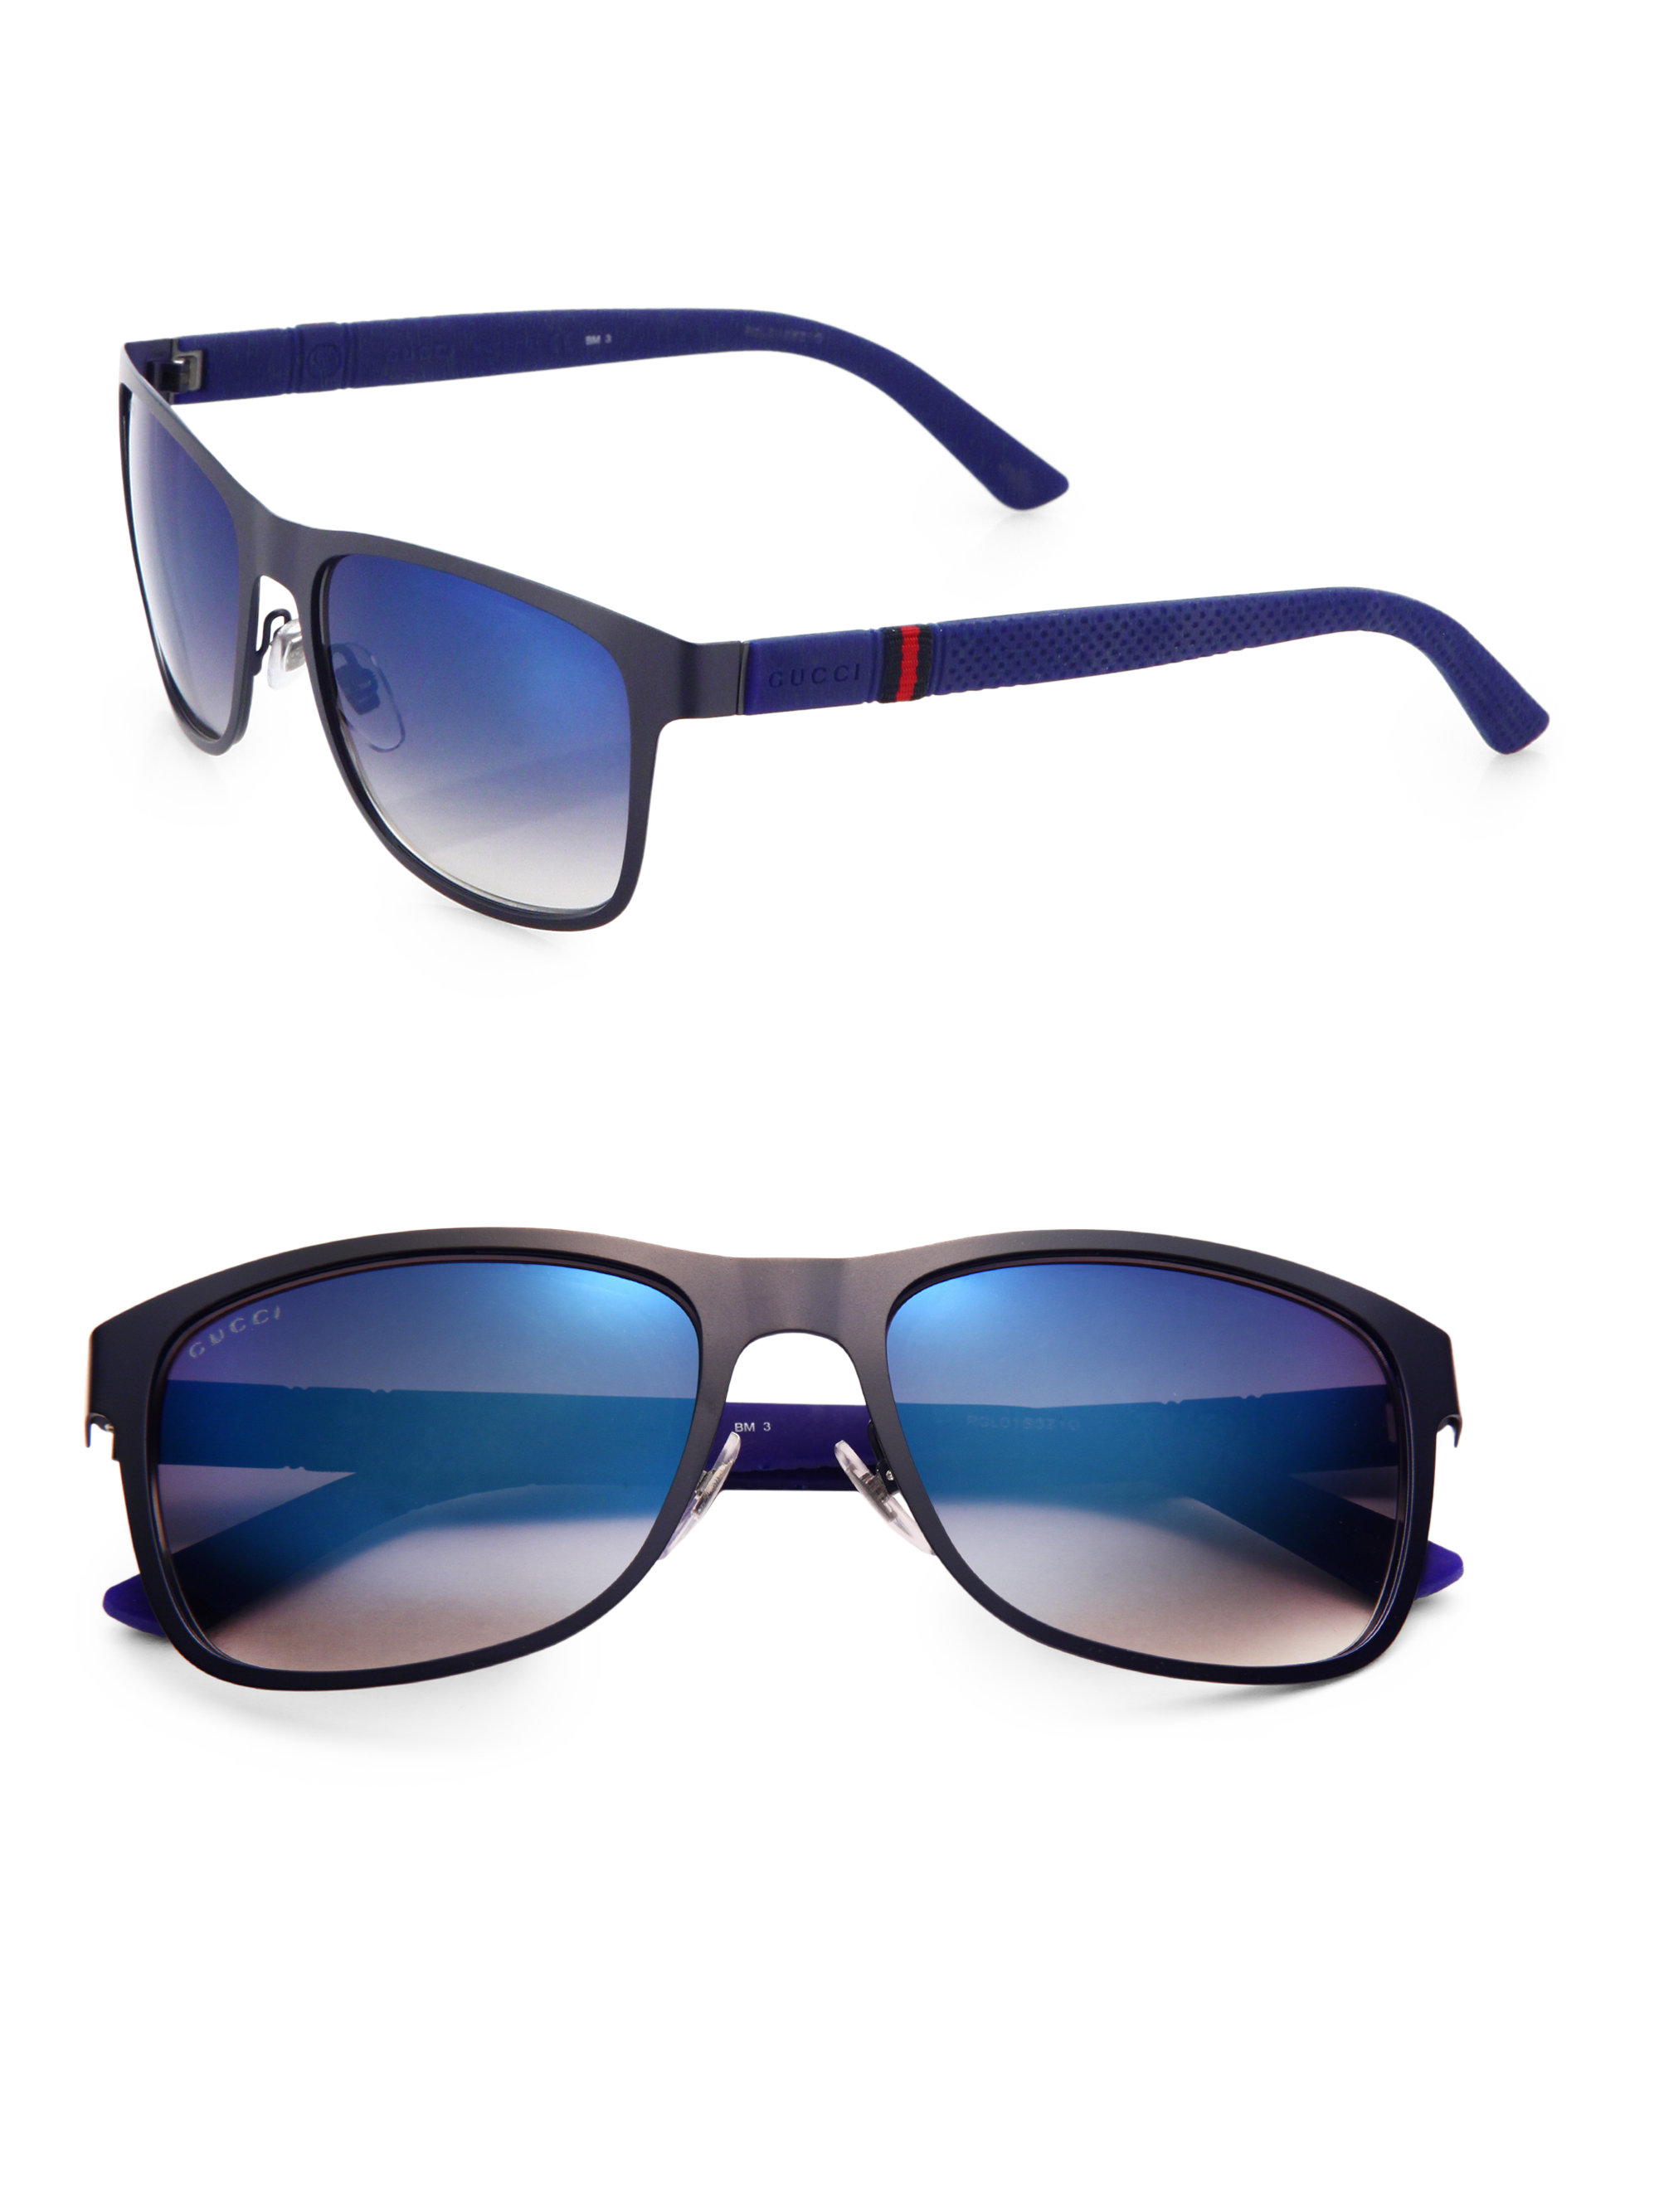 4728fd3d27f Lyst - Gucci 56mm Wayfarer Sunglasses in Blue for Men